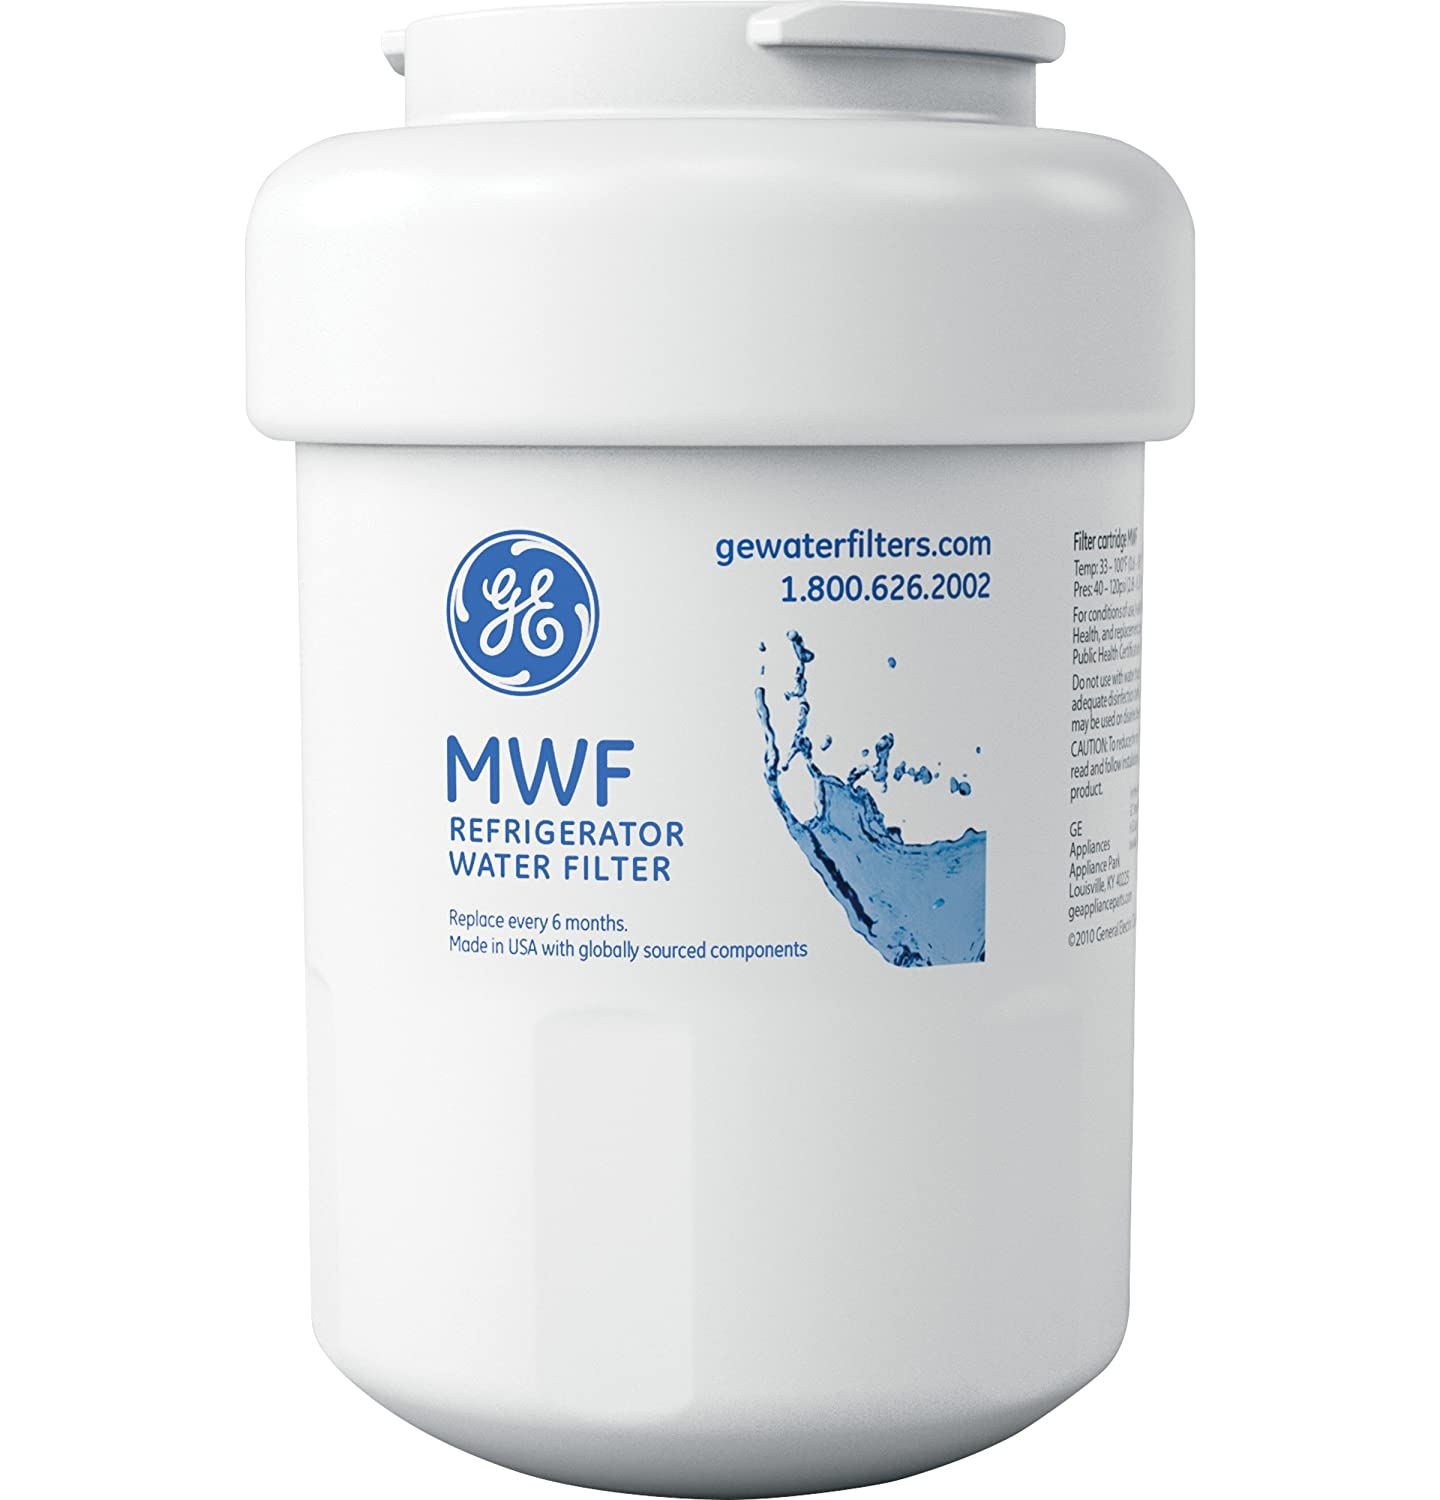 Ge Smartwater Refrigerator Filter Replacement Cartridge Amazoncom General Electric Mwf Refrigerator Water Filter Home